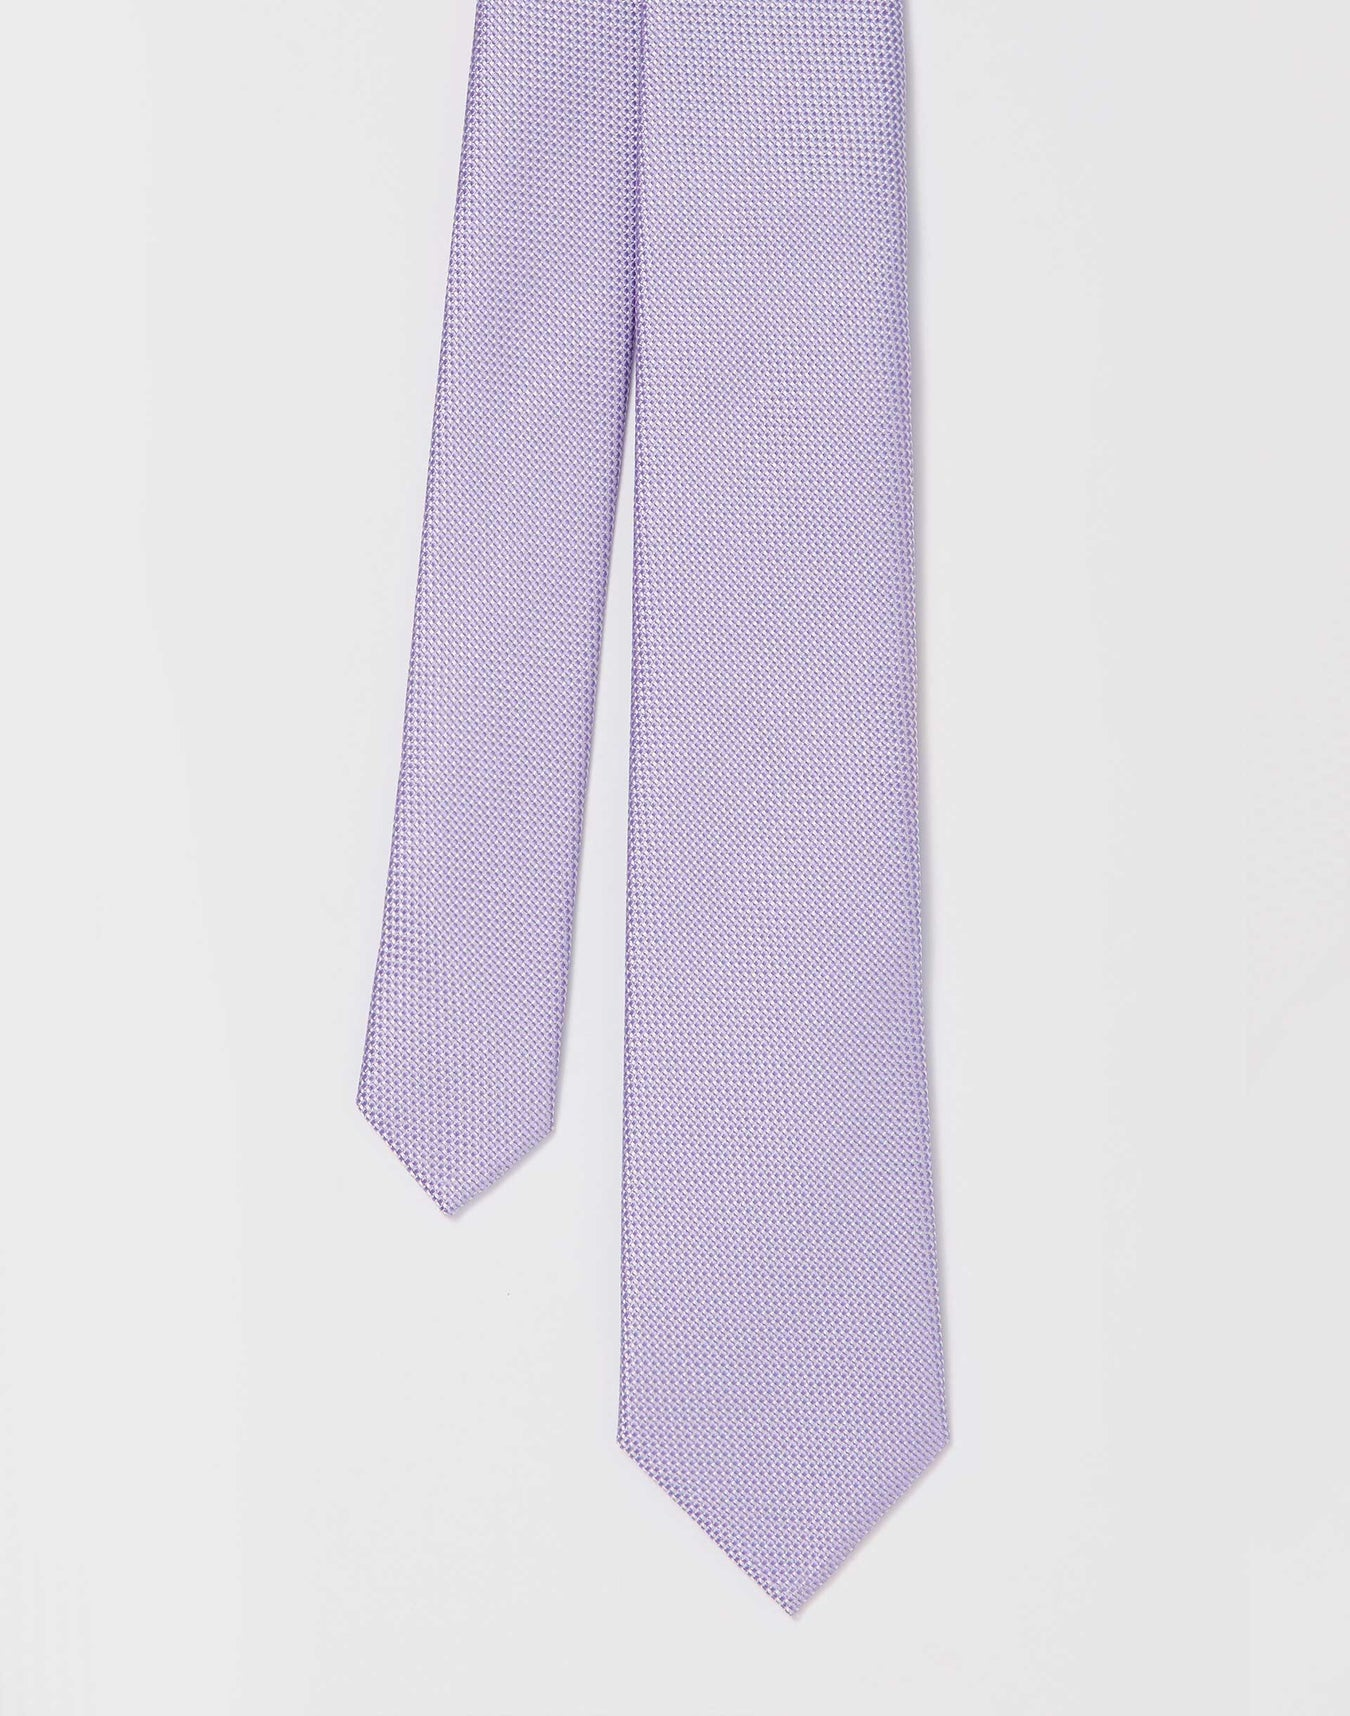 Cravate Super Slim Lilas